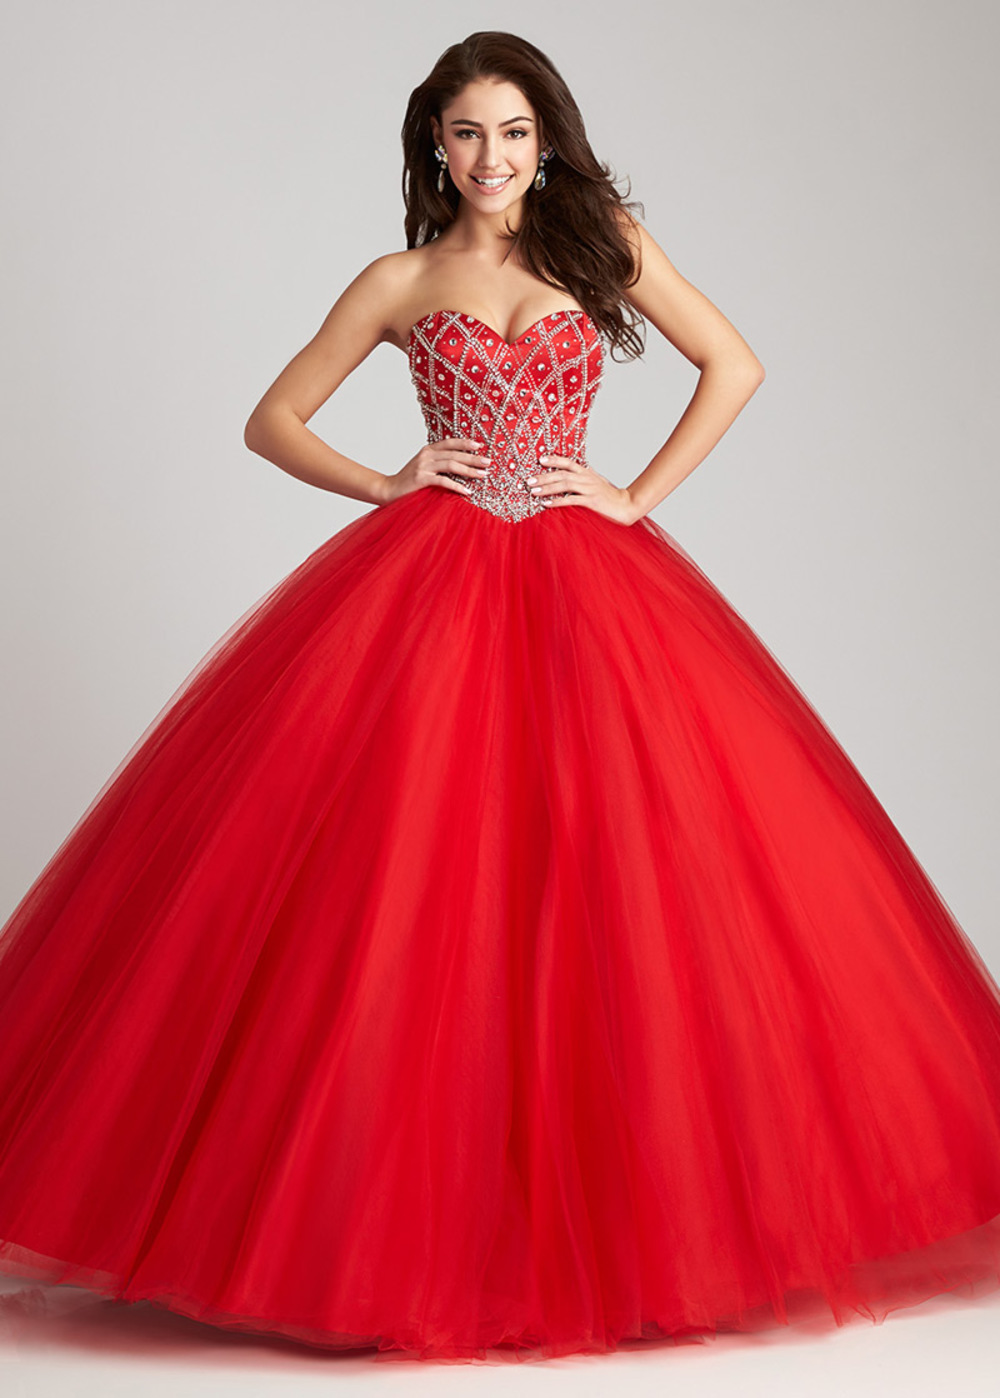 0b7b2df297 Tulle Ball Gown Quinceanera Dresses